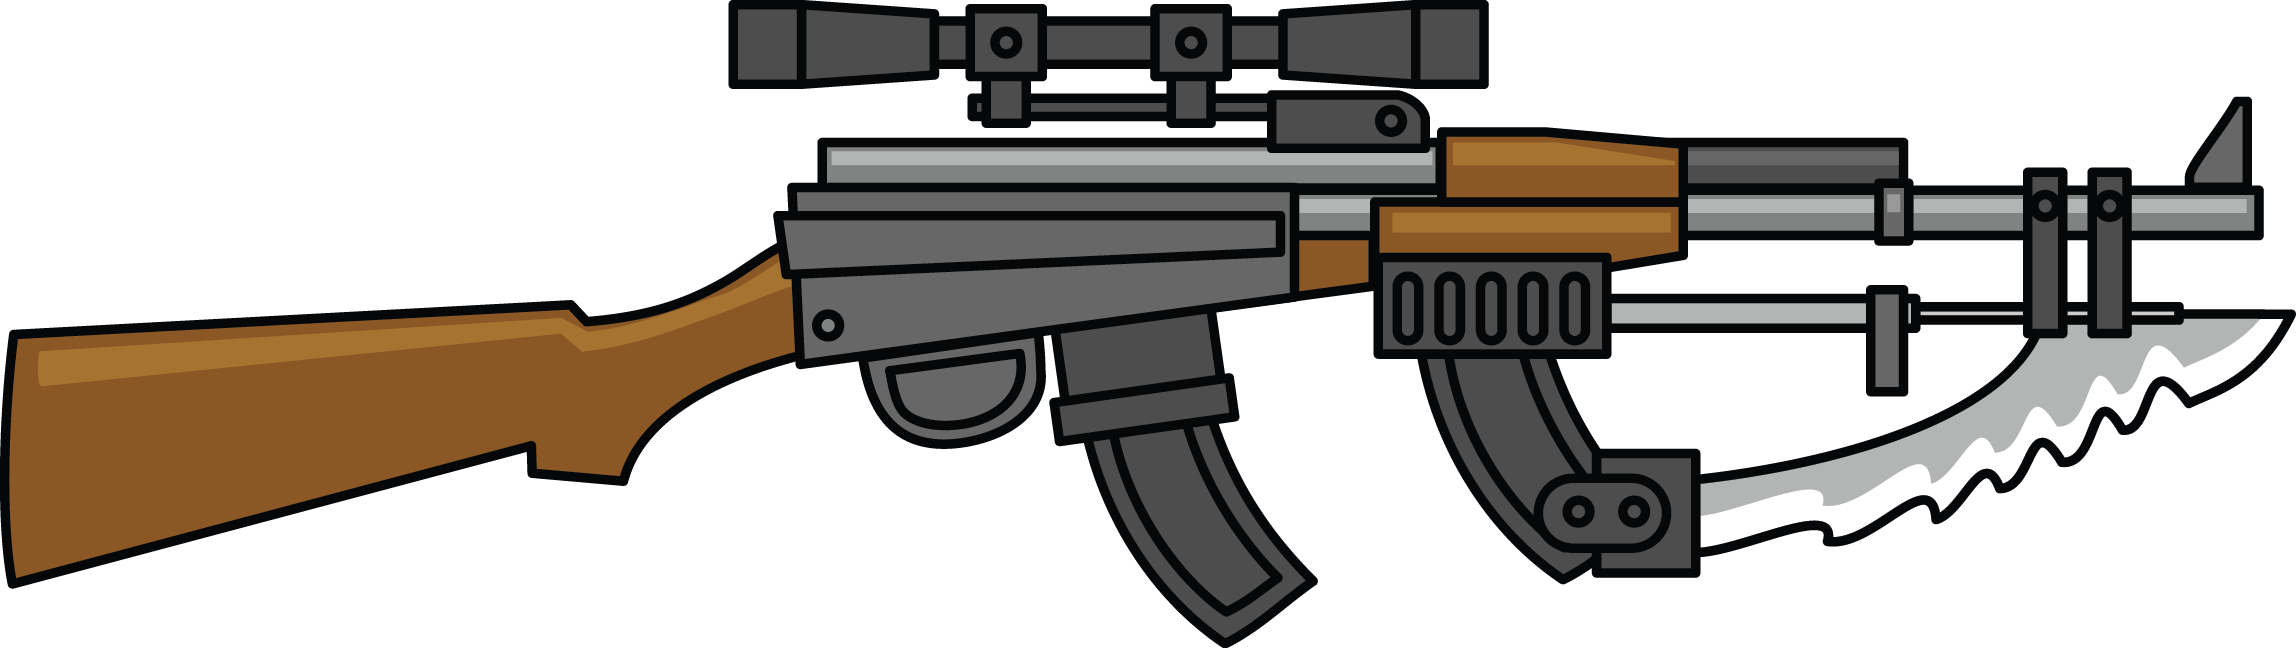 Weapon military pencil and. Gun clipart sniper